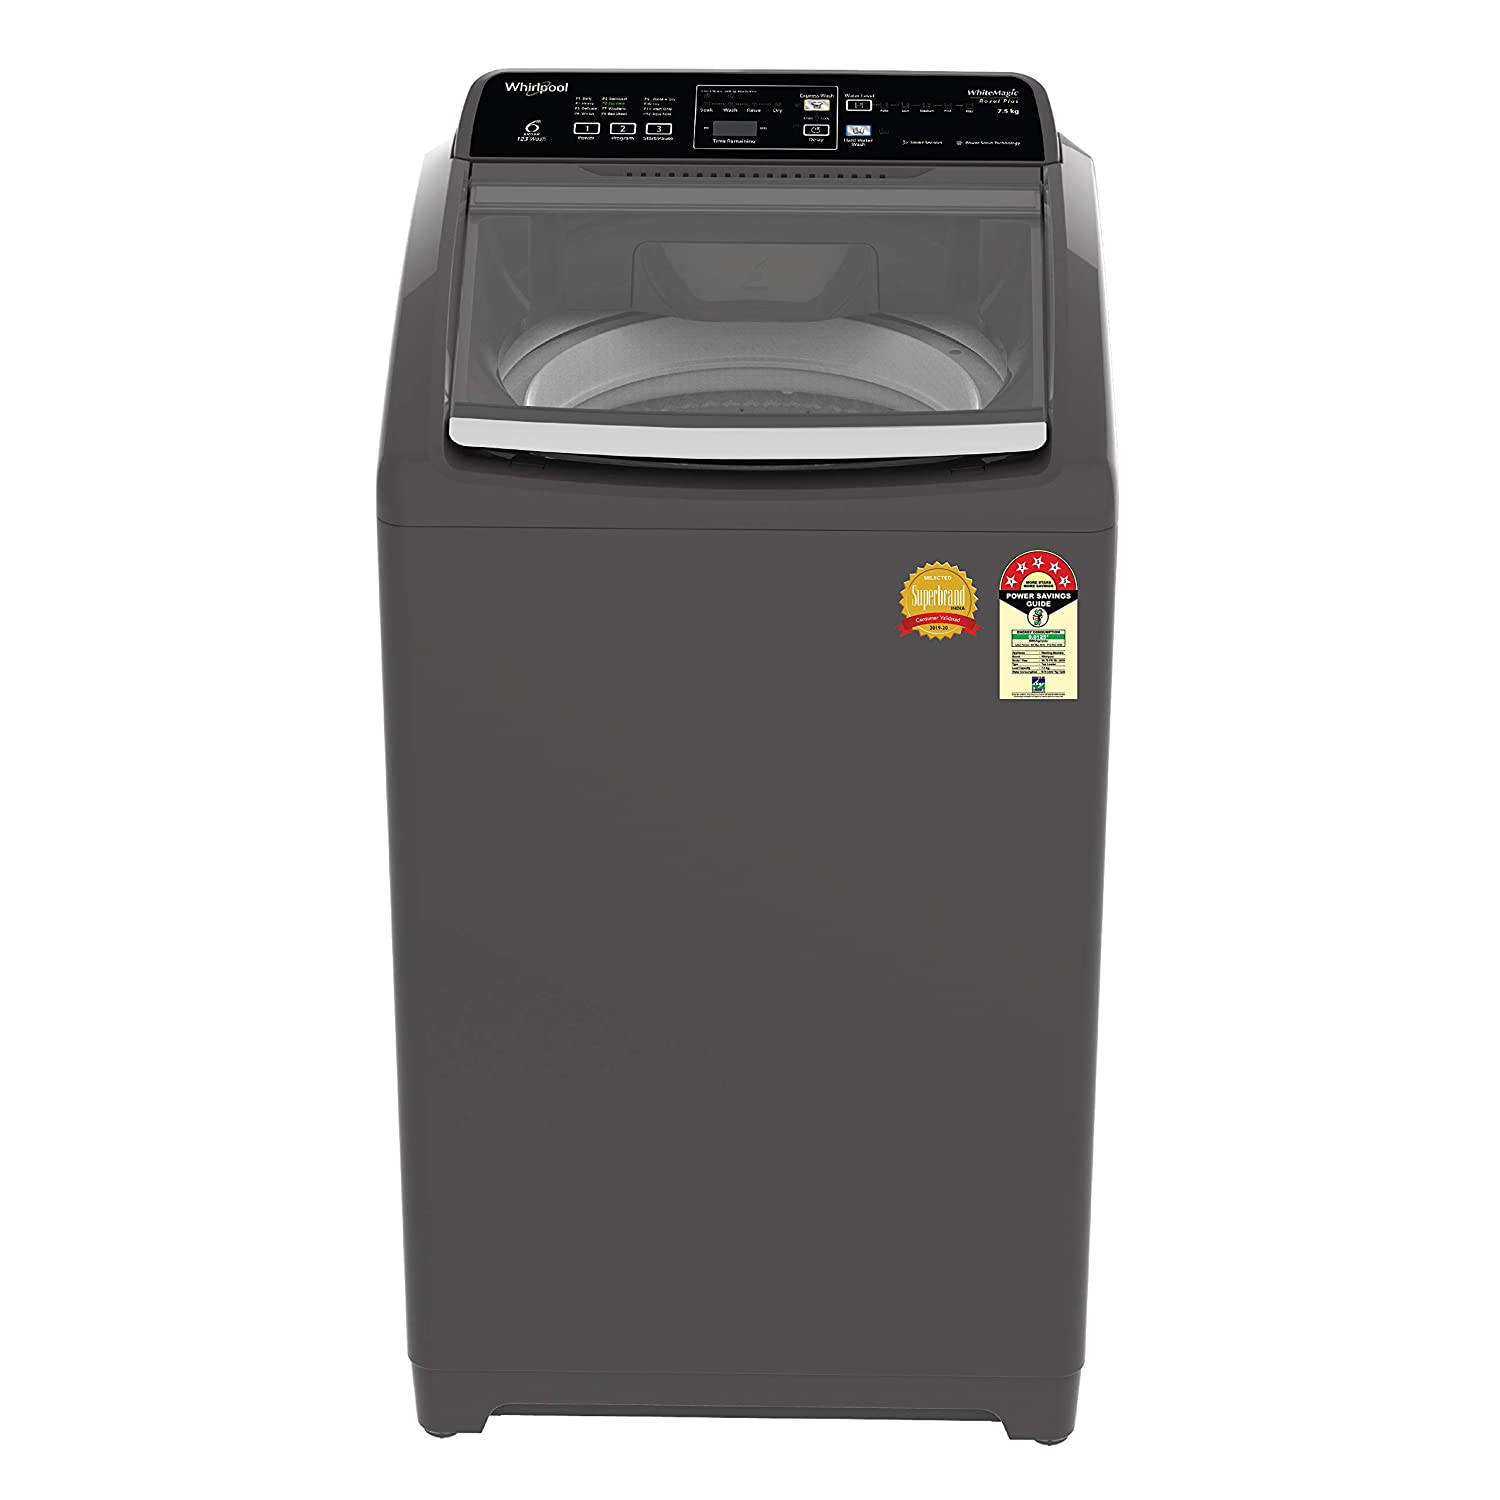 Whirlpool 7.5 Kg 5 Star Royal Plus Fully-Automatic Top Loading Washing Machine